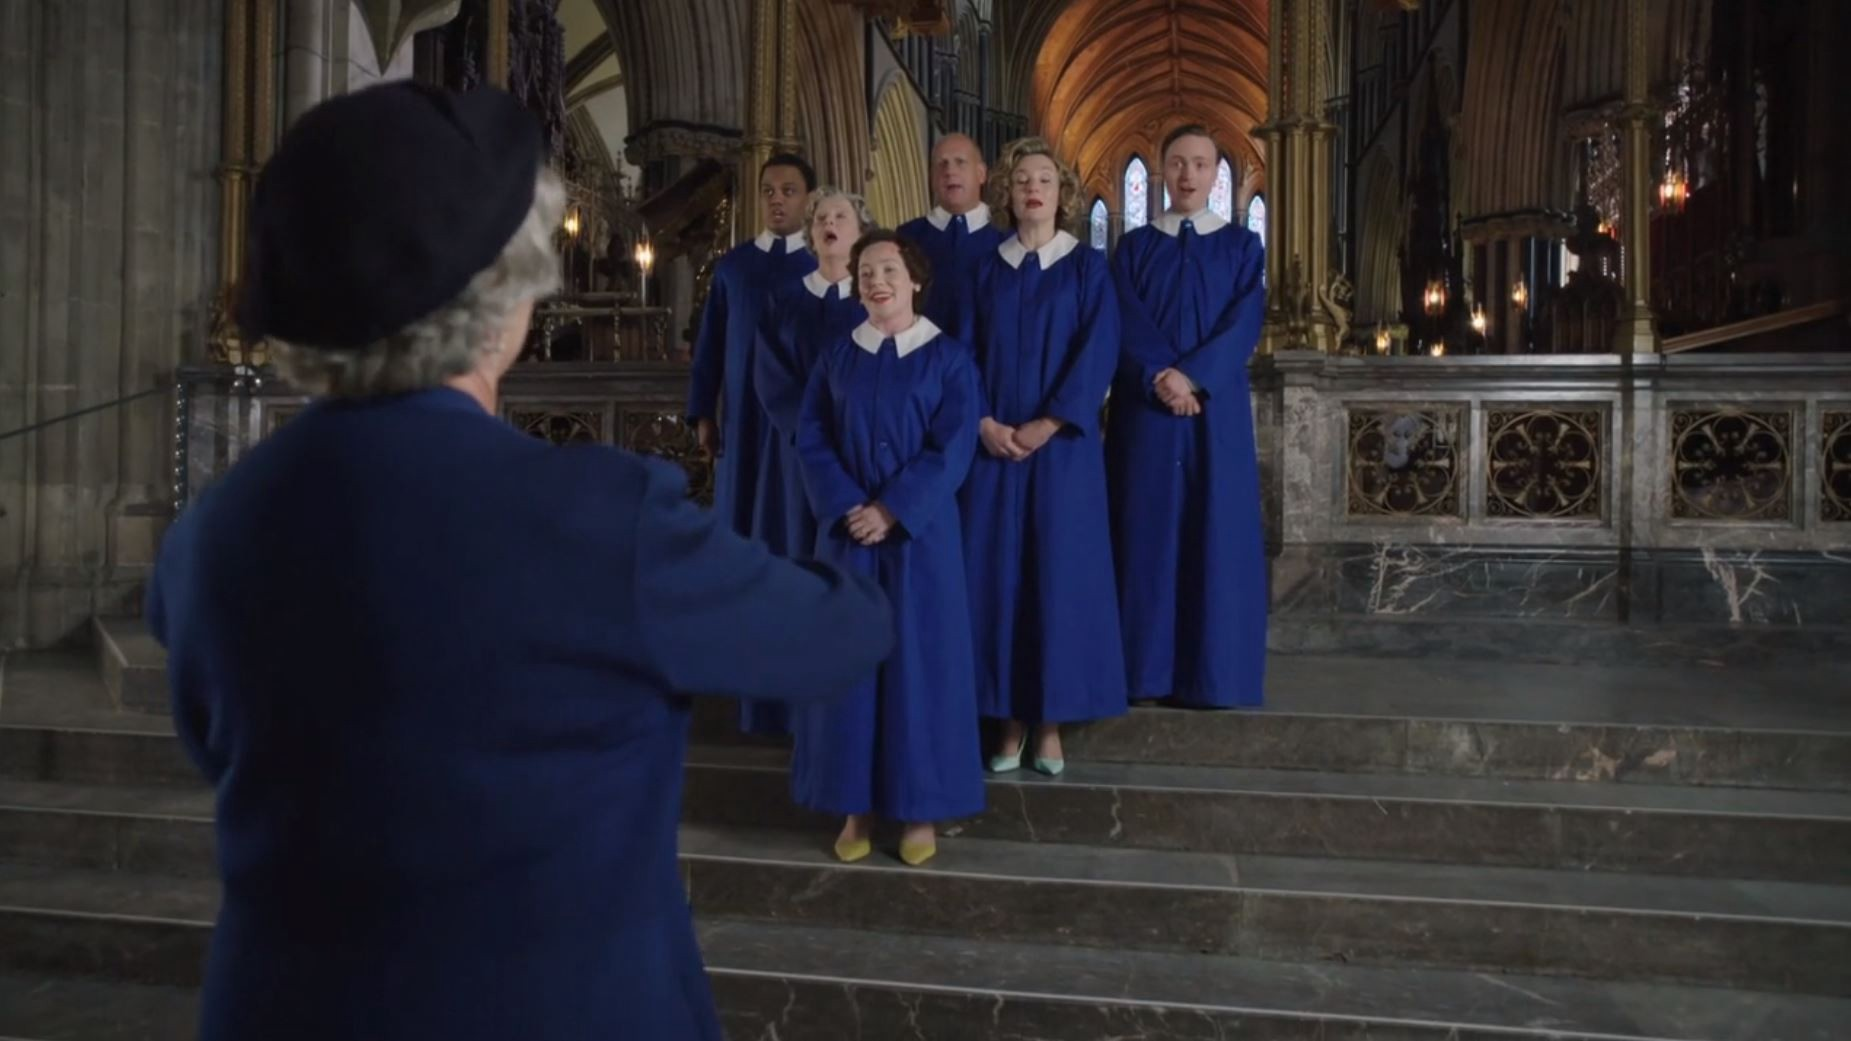 Father Brown S08 E01 The Celestial Choir By Shain E Thomas Harsh Light News Medium Daisy brown started her twitter account with the basis of her and her monster 'alan', and how she on july 18th, daisy brown posted a video to youtube of her feeding what apparently was alan. father brown s08 e01 the celestial